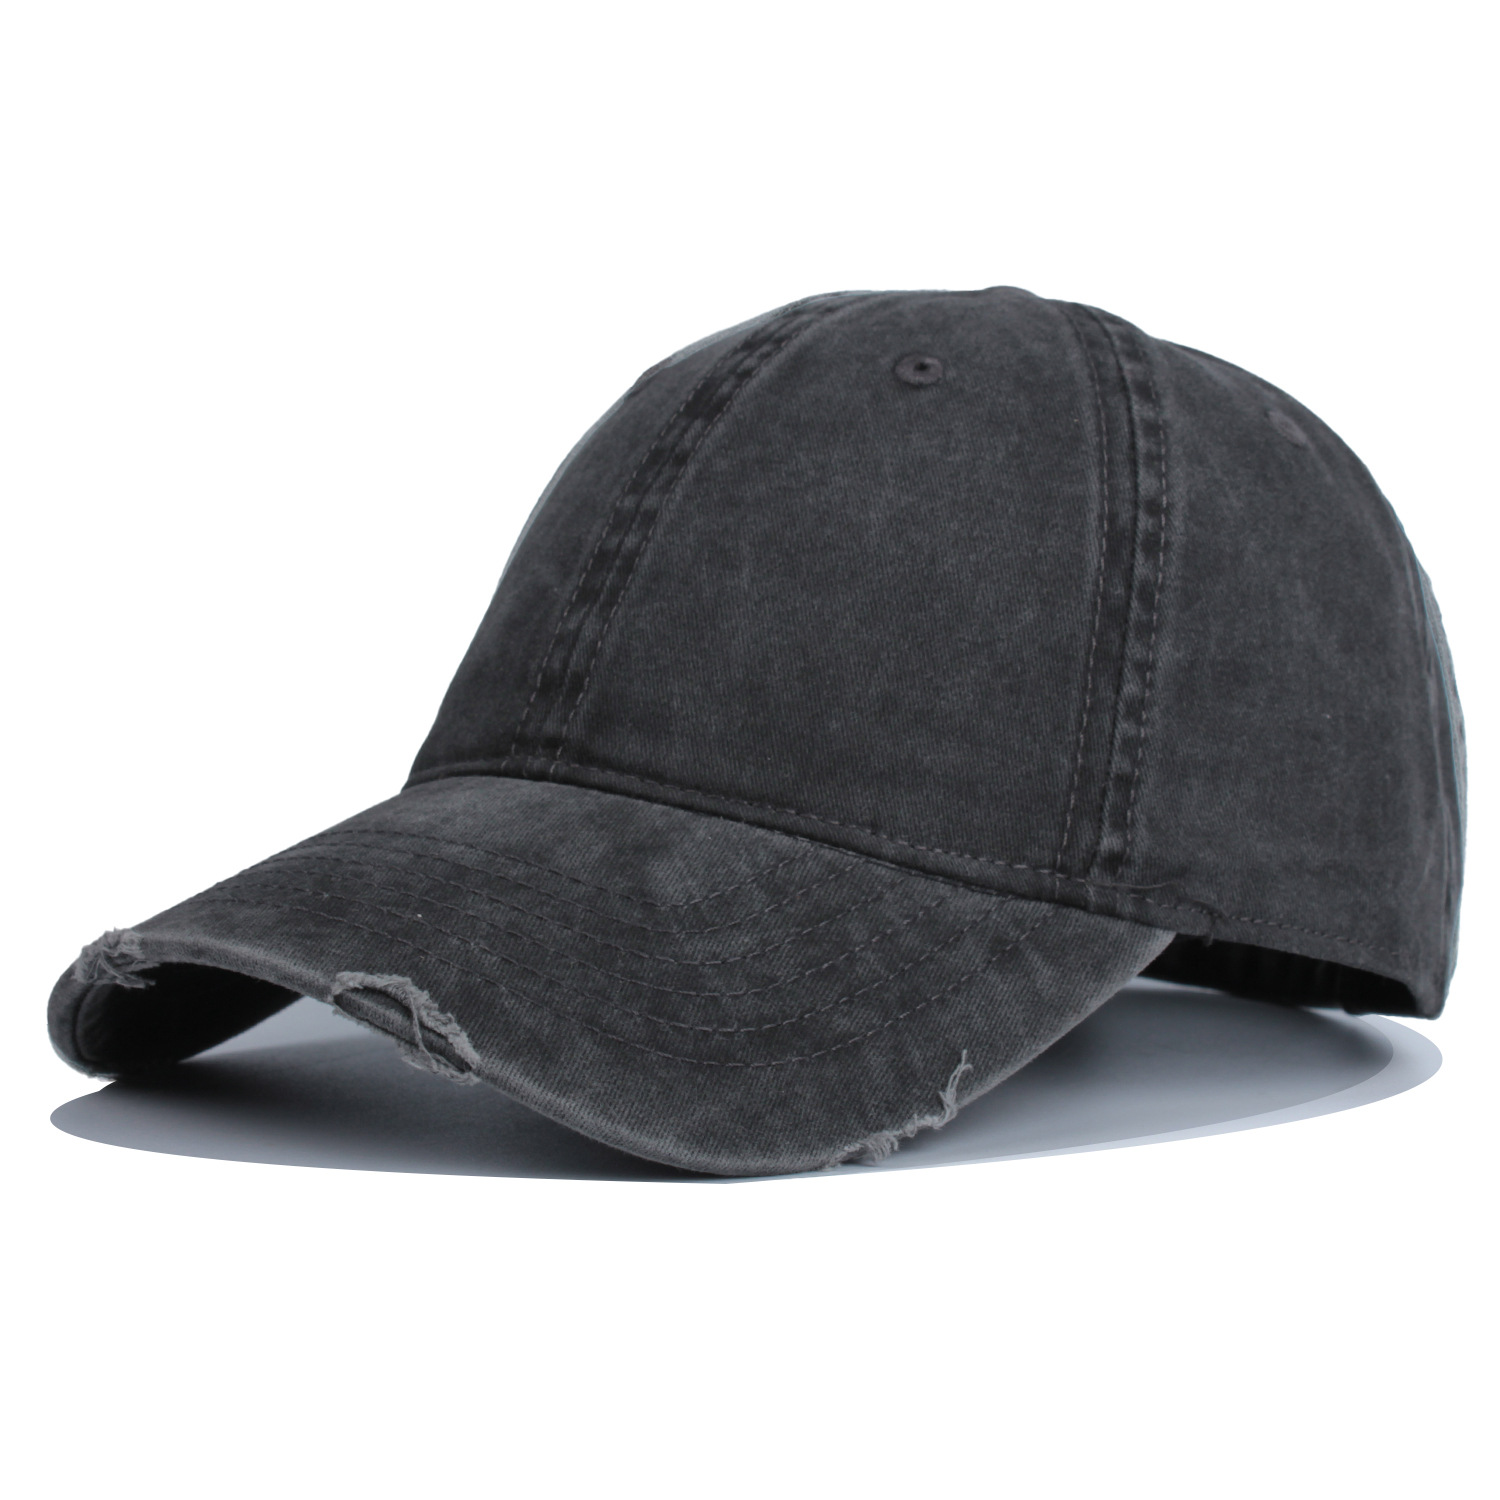 Splendid Sunscreen Cotton Curved-Brim Hat for Chill Hangouts